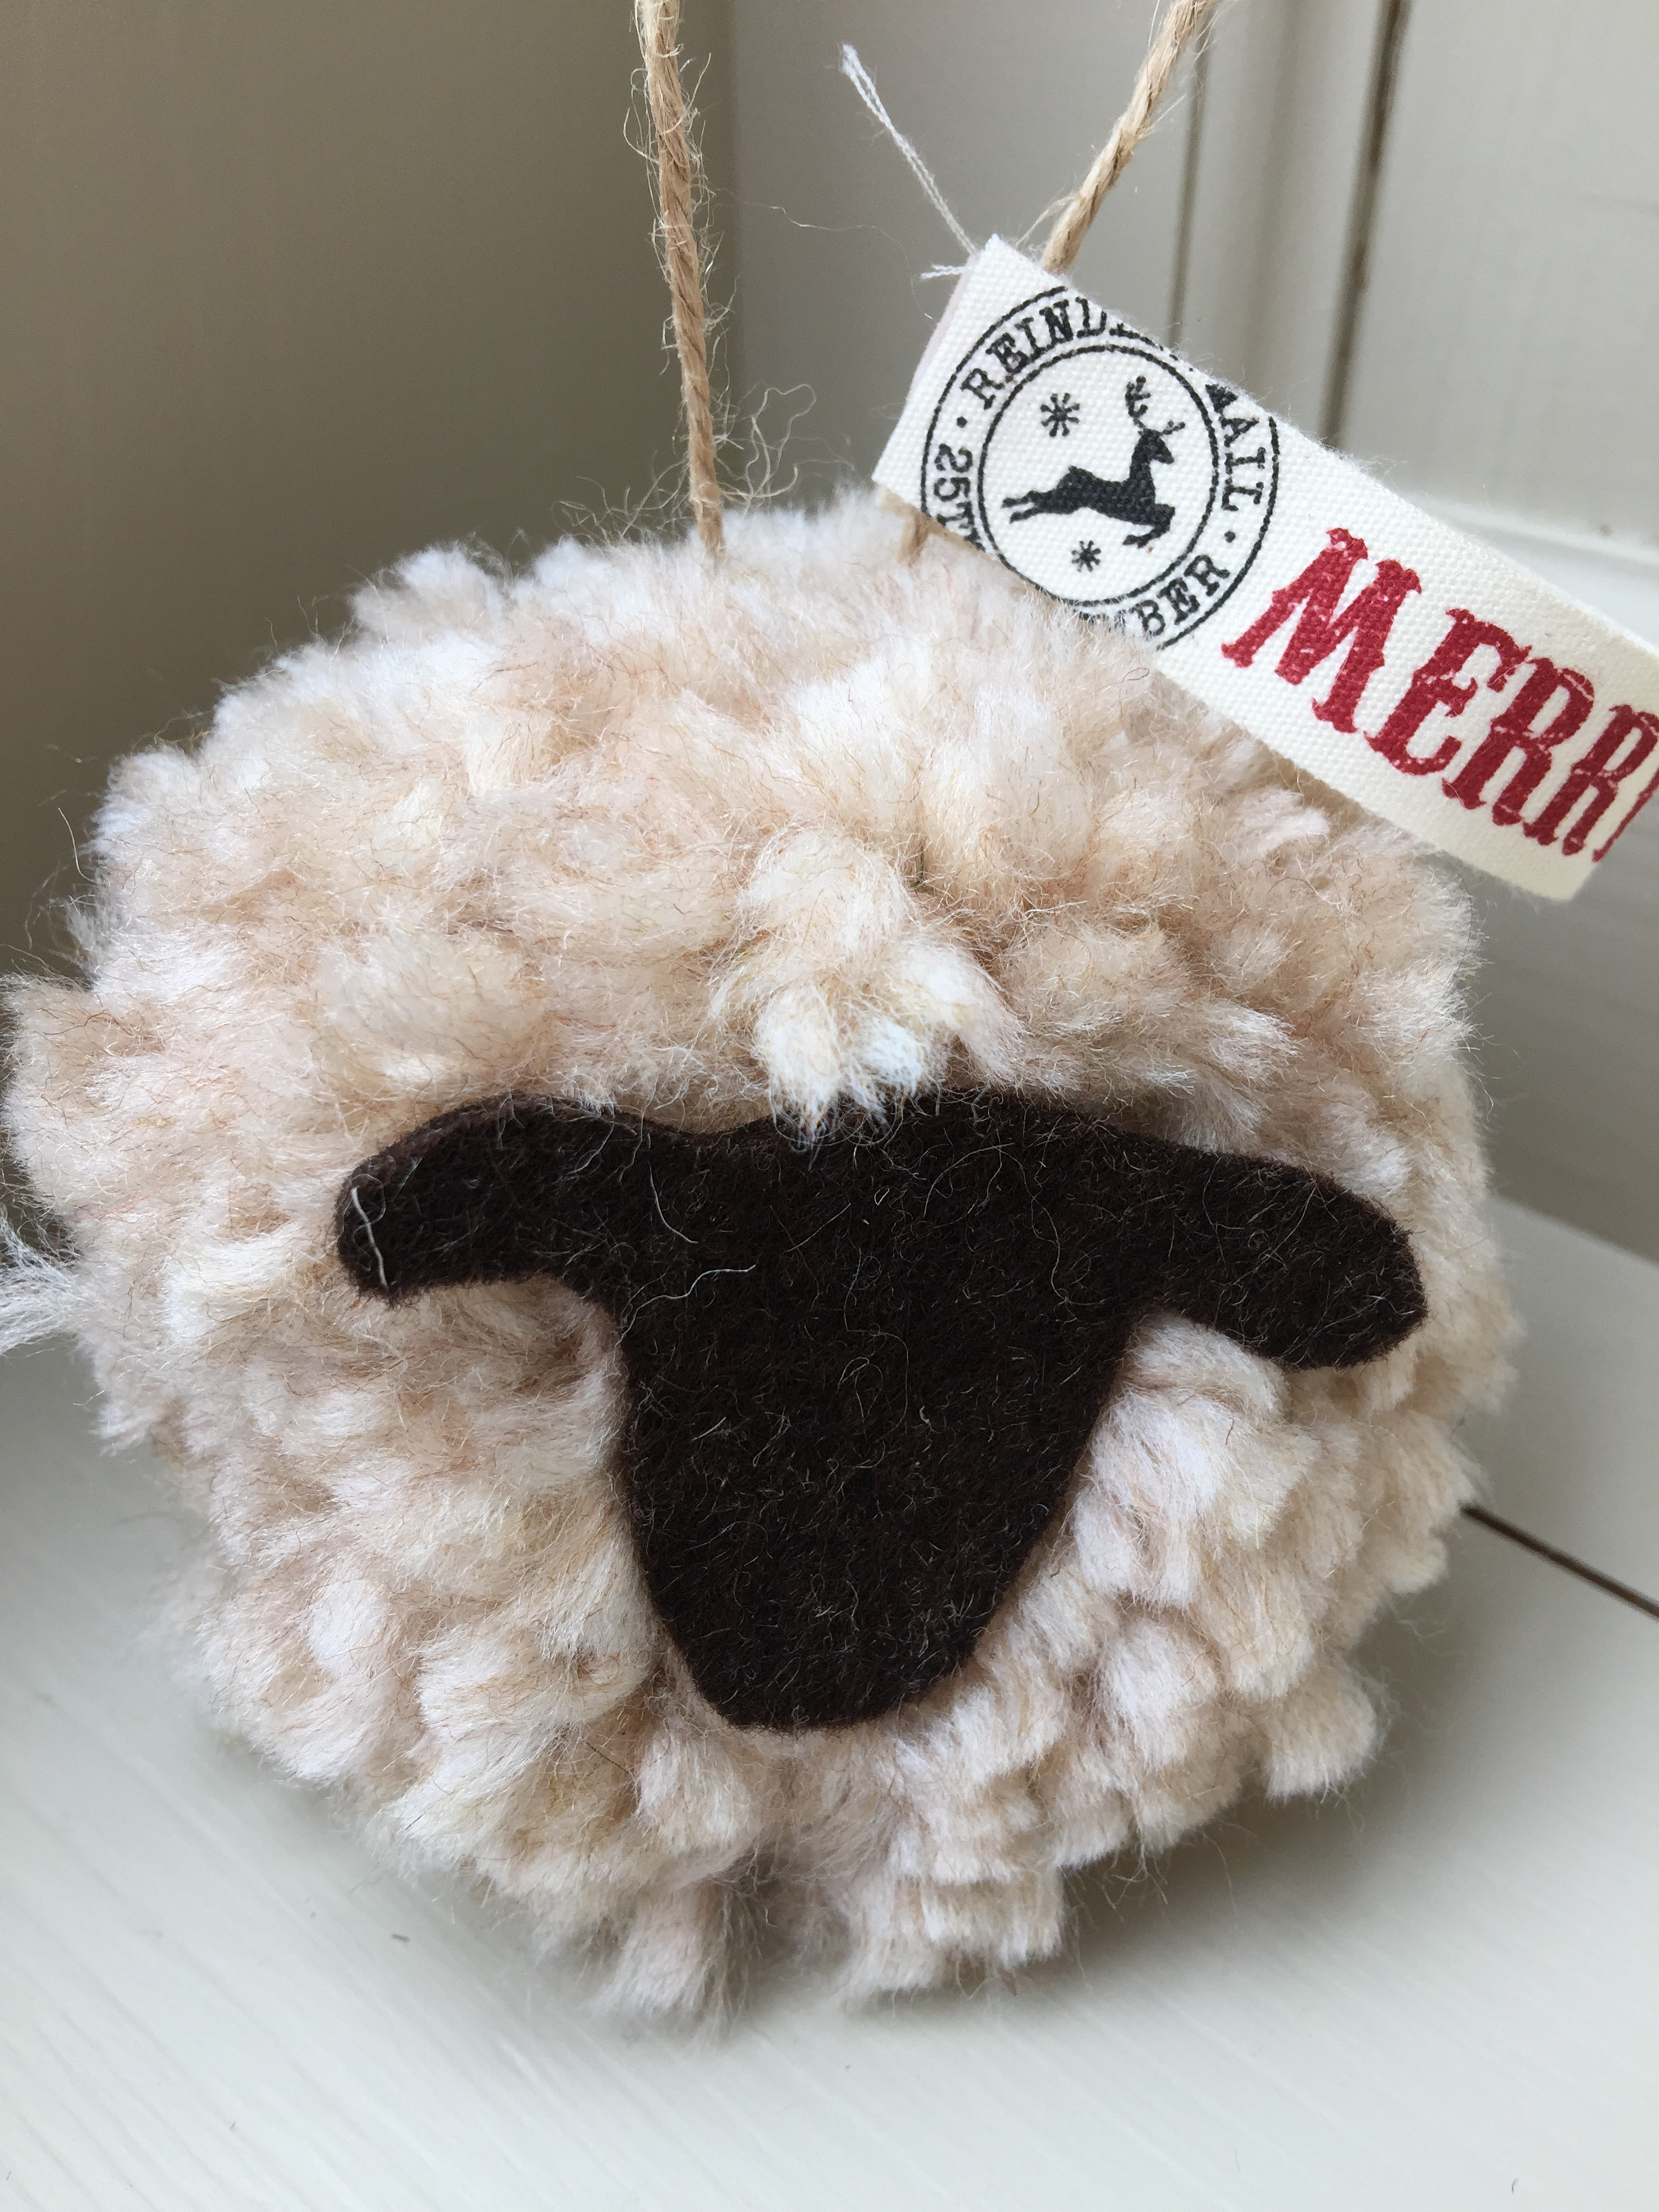 Giant sheep pom pom Christmas decorations : these large sheep hanging pom poms make a great hanging door decoration.  Made from wooden yarn they are around the size of a tennis ball (or a little larger ...)